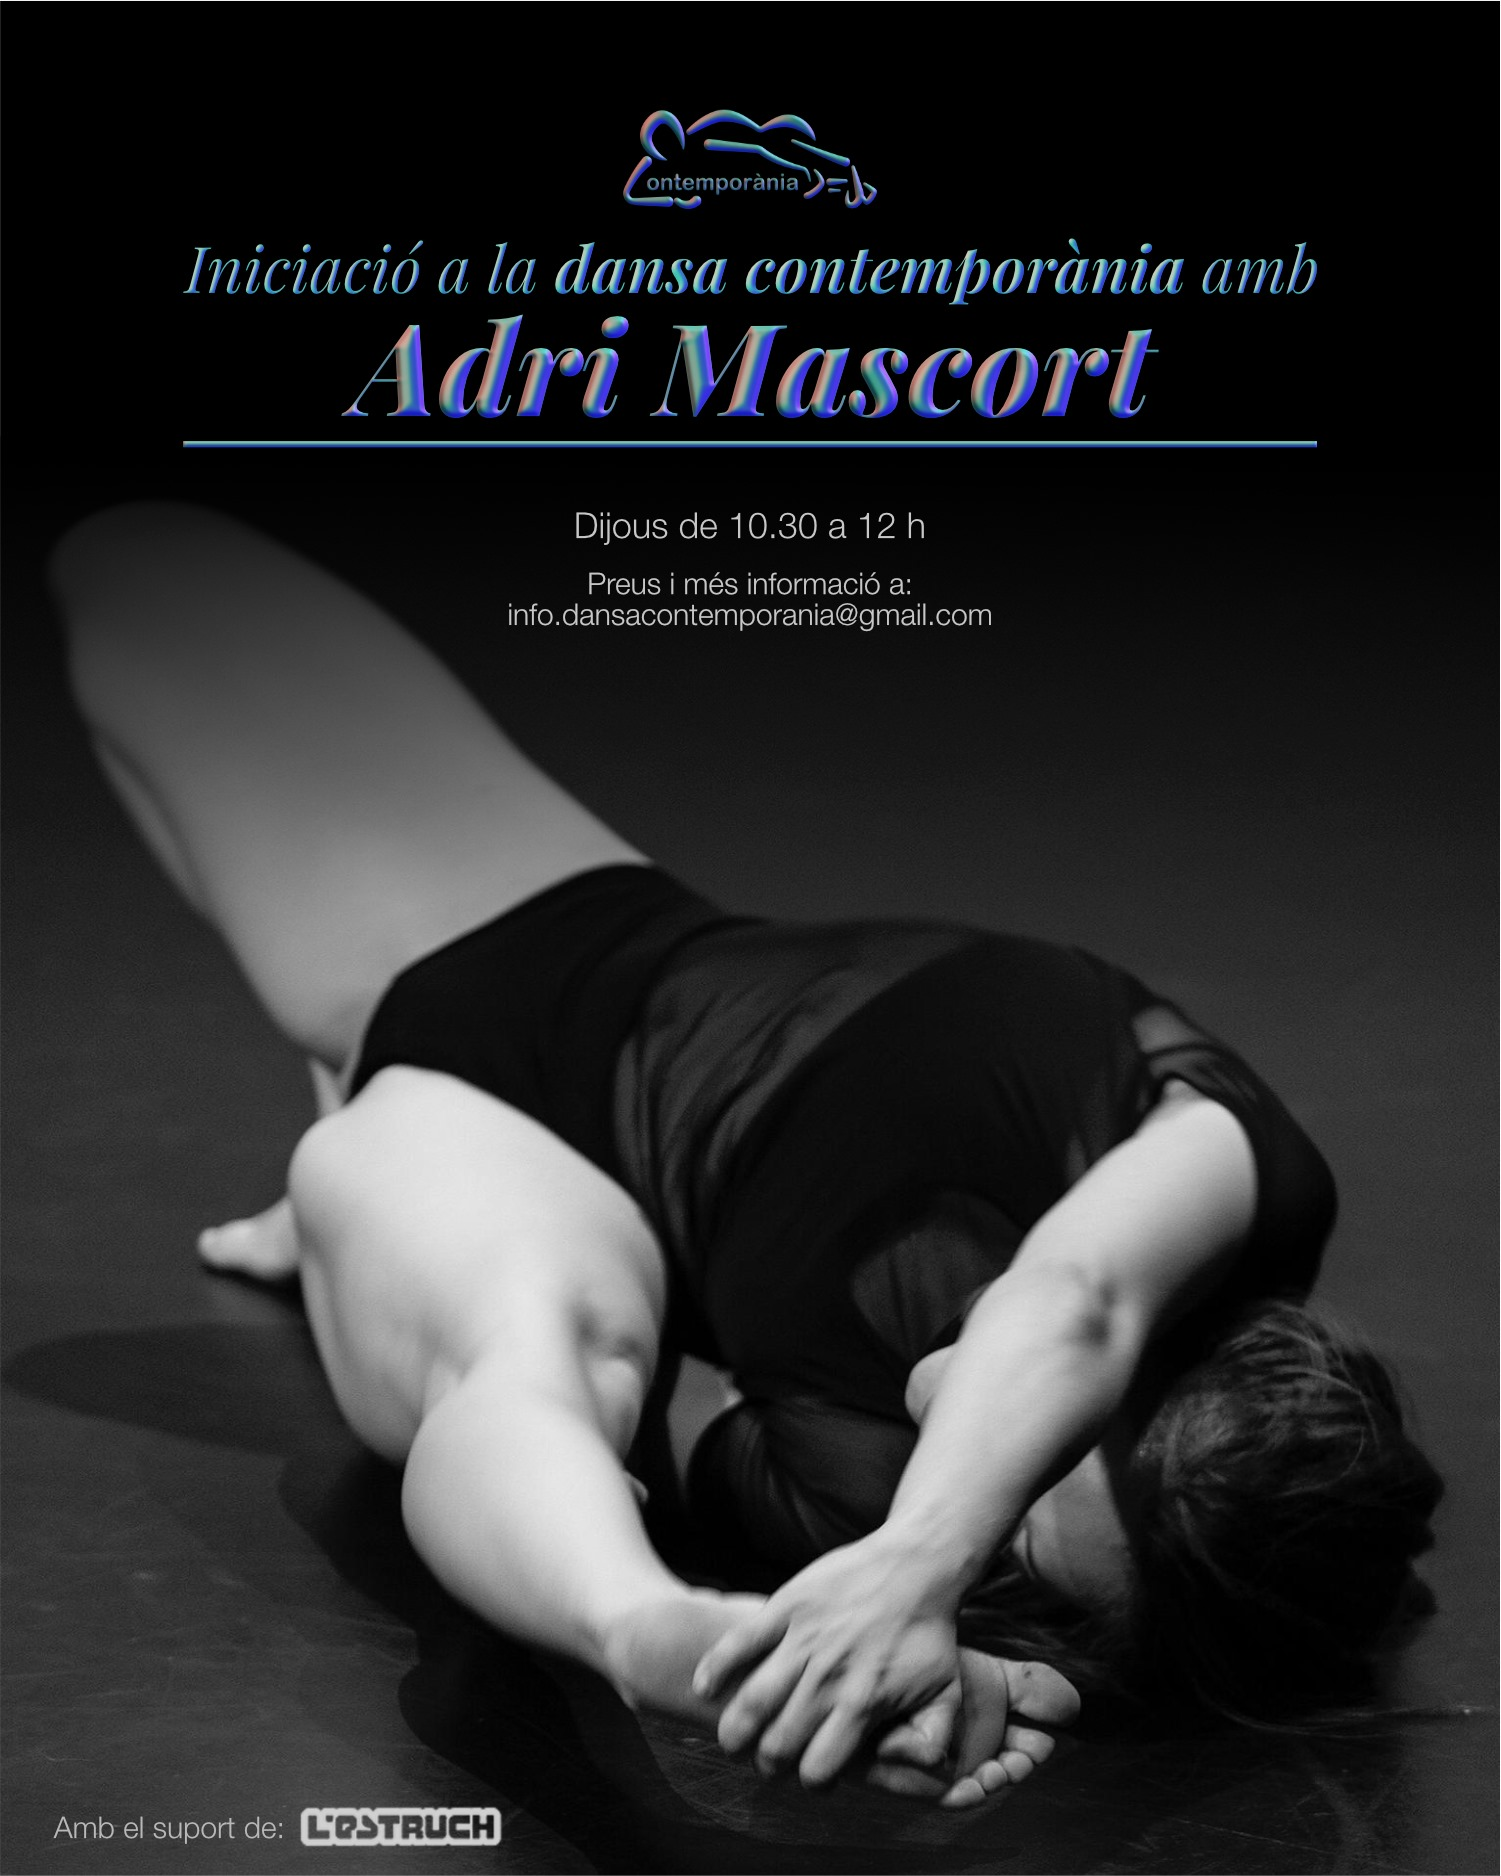 L'ESTRUCH FÀBRICA DE CREACIÓ, Sabadell - Every Thursday from September 12th oof 2019 to February 2020 with Adri Mascort.10:30 am to 12 pm